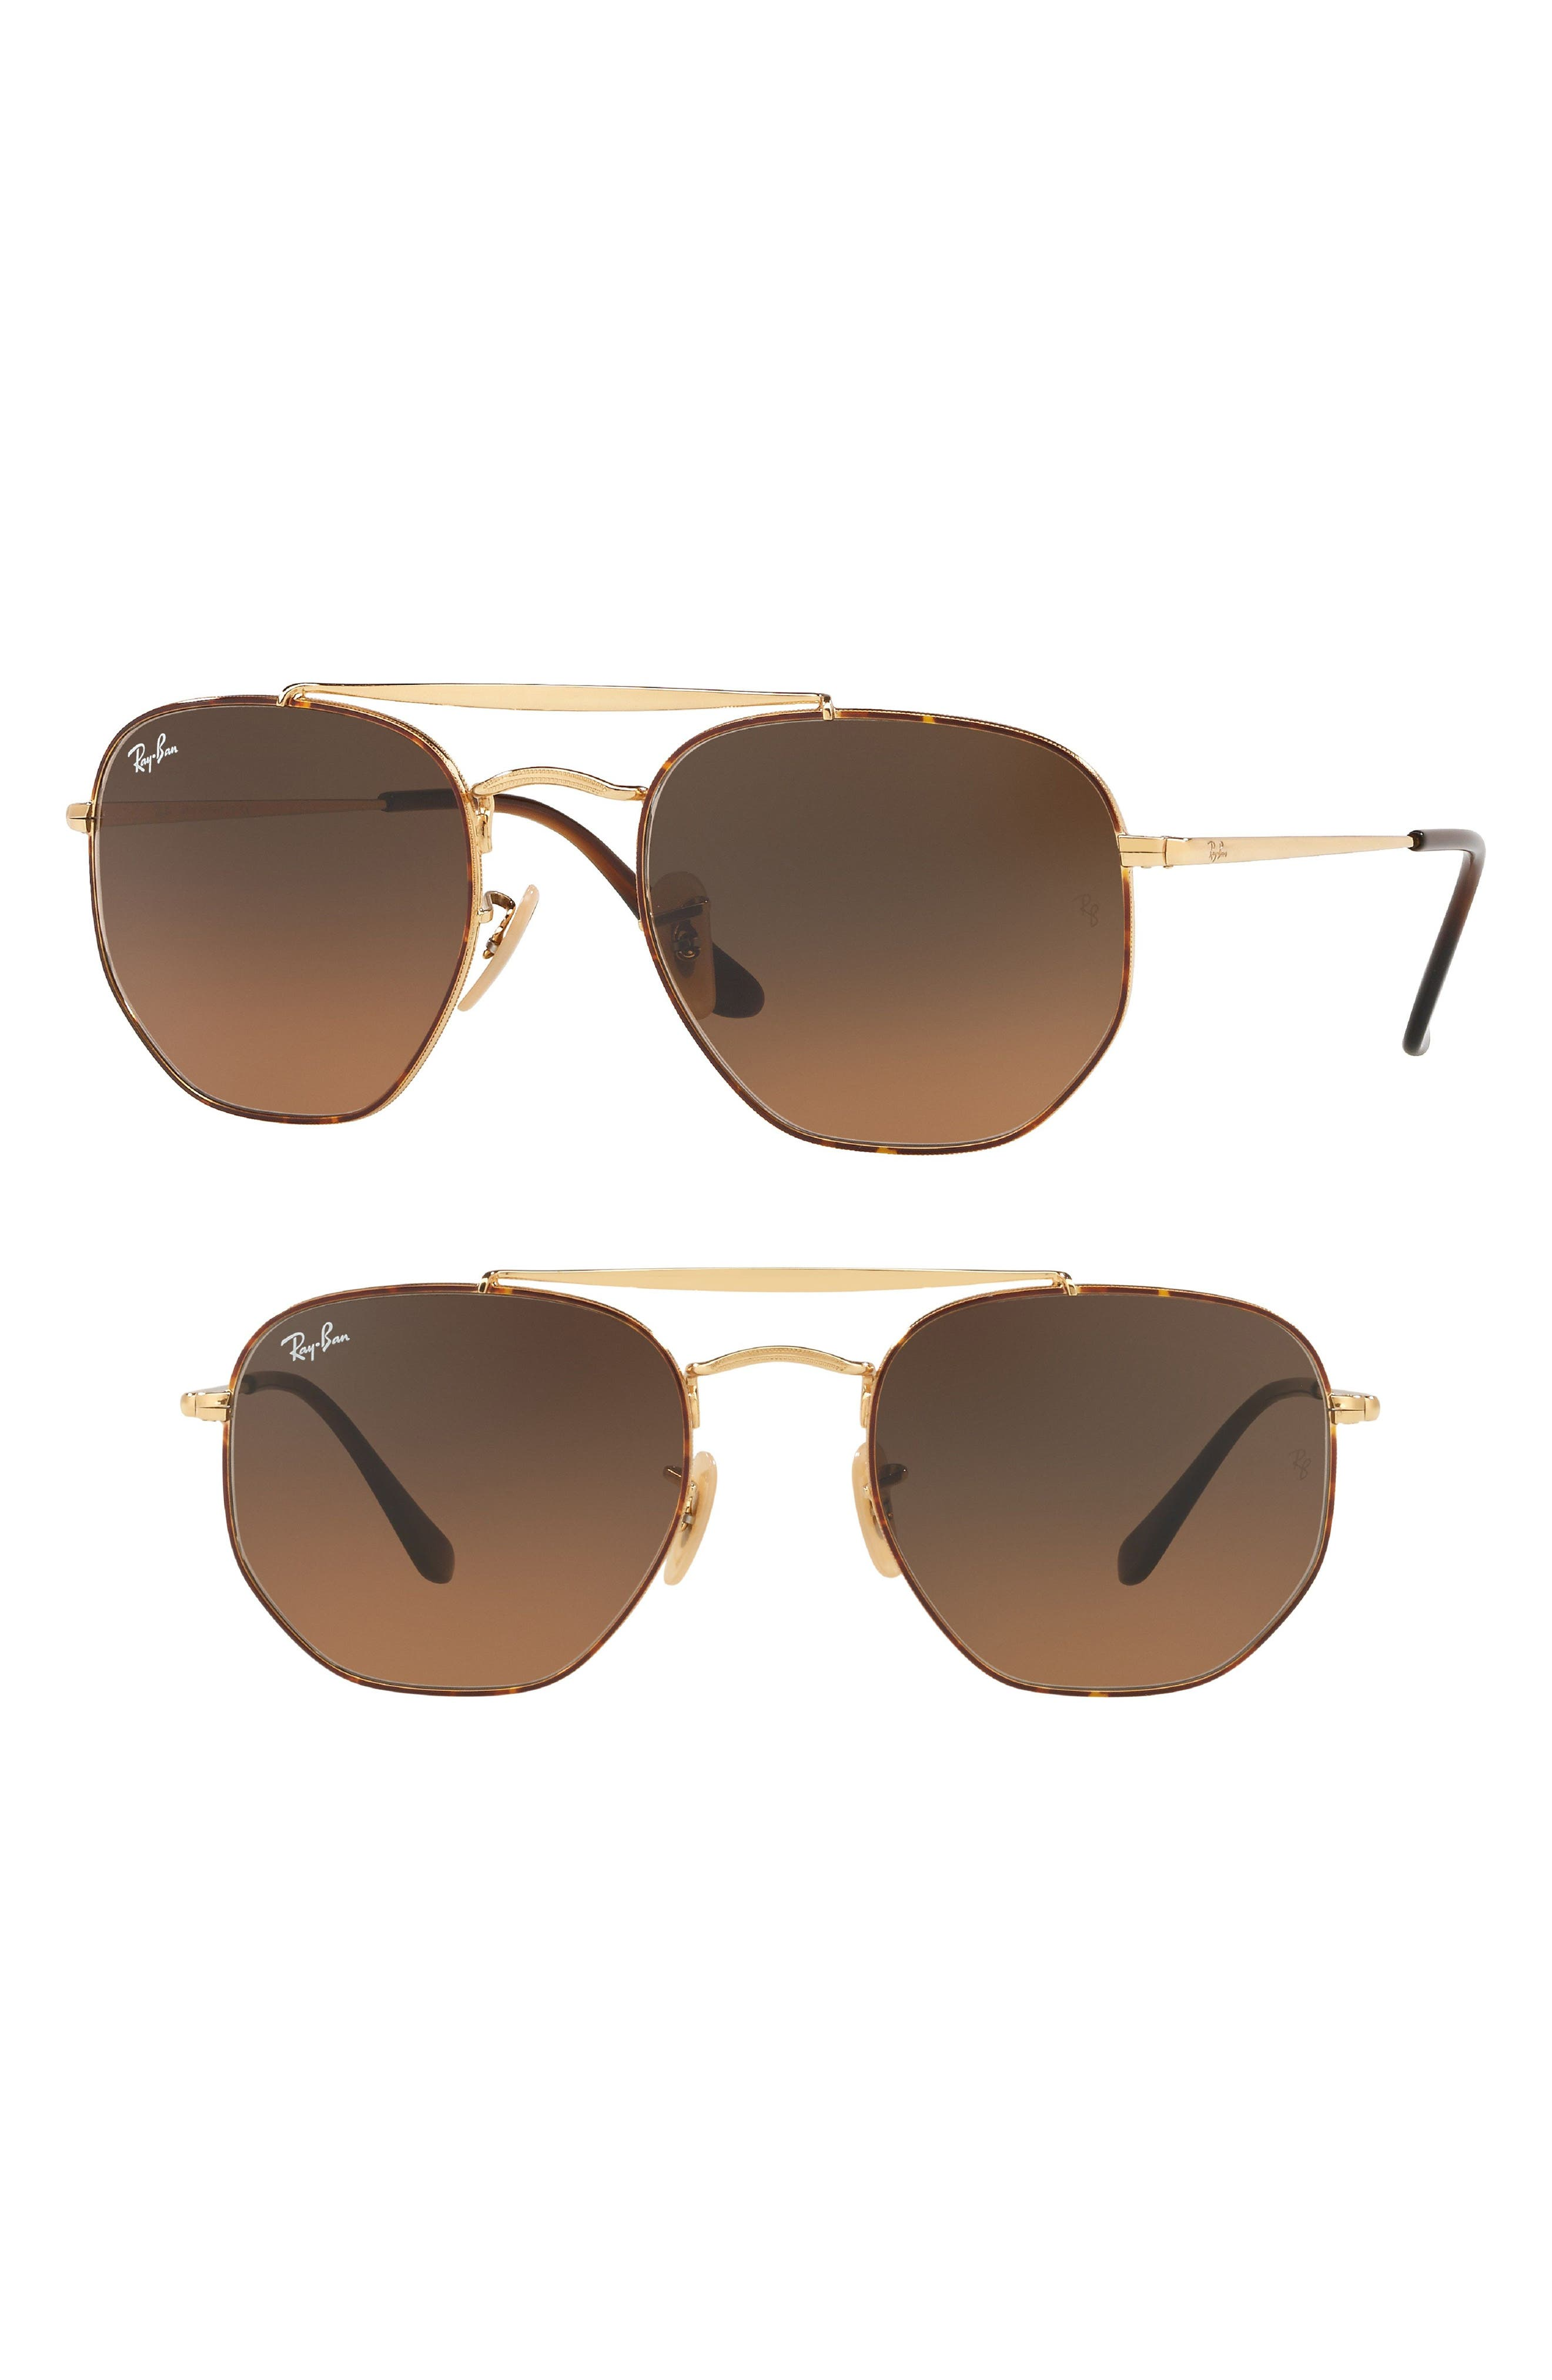 RAY-BAN, 54mm Gradient Sunglasses, Main thumbnail 1, color, HAVANA GRADIENT